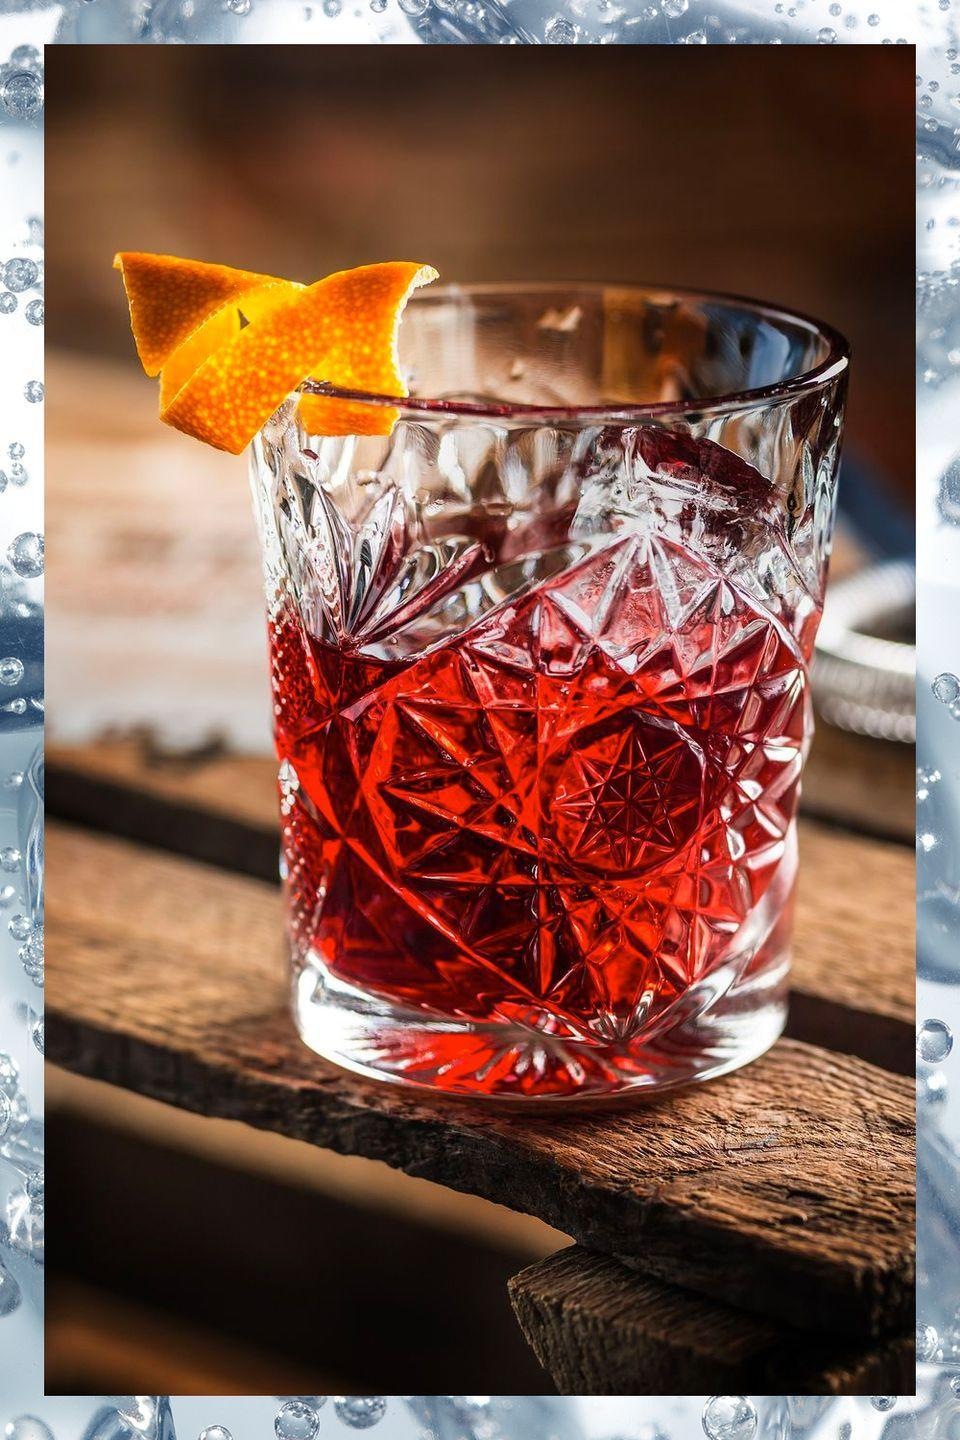 """<p>A favorite of bartenders all over the world, the Negroni is a simple three-ingredient cocktail:</p><p>- 1 oz gin<br>- 1 oz Campari<br>- 1 oz sweet vermouth</p><p><em>Stir ingredients with ice.</em></p><p><strong>More:</strong> <a href=""""https://www.townandcountrymag.com/leisure/drinks/a3205/things-you-didnt-know-about-the-negroni/"""" rel=""""nofollow noopener"""" target=""""_blank"""" data-ylk=""""slk:15 Things You Didn't Know About Negronis"""" class=""""link rapid-noclick-resp"""">15 Things You Didn't Know About Negronis</a></p>"""